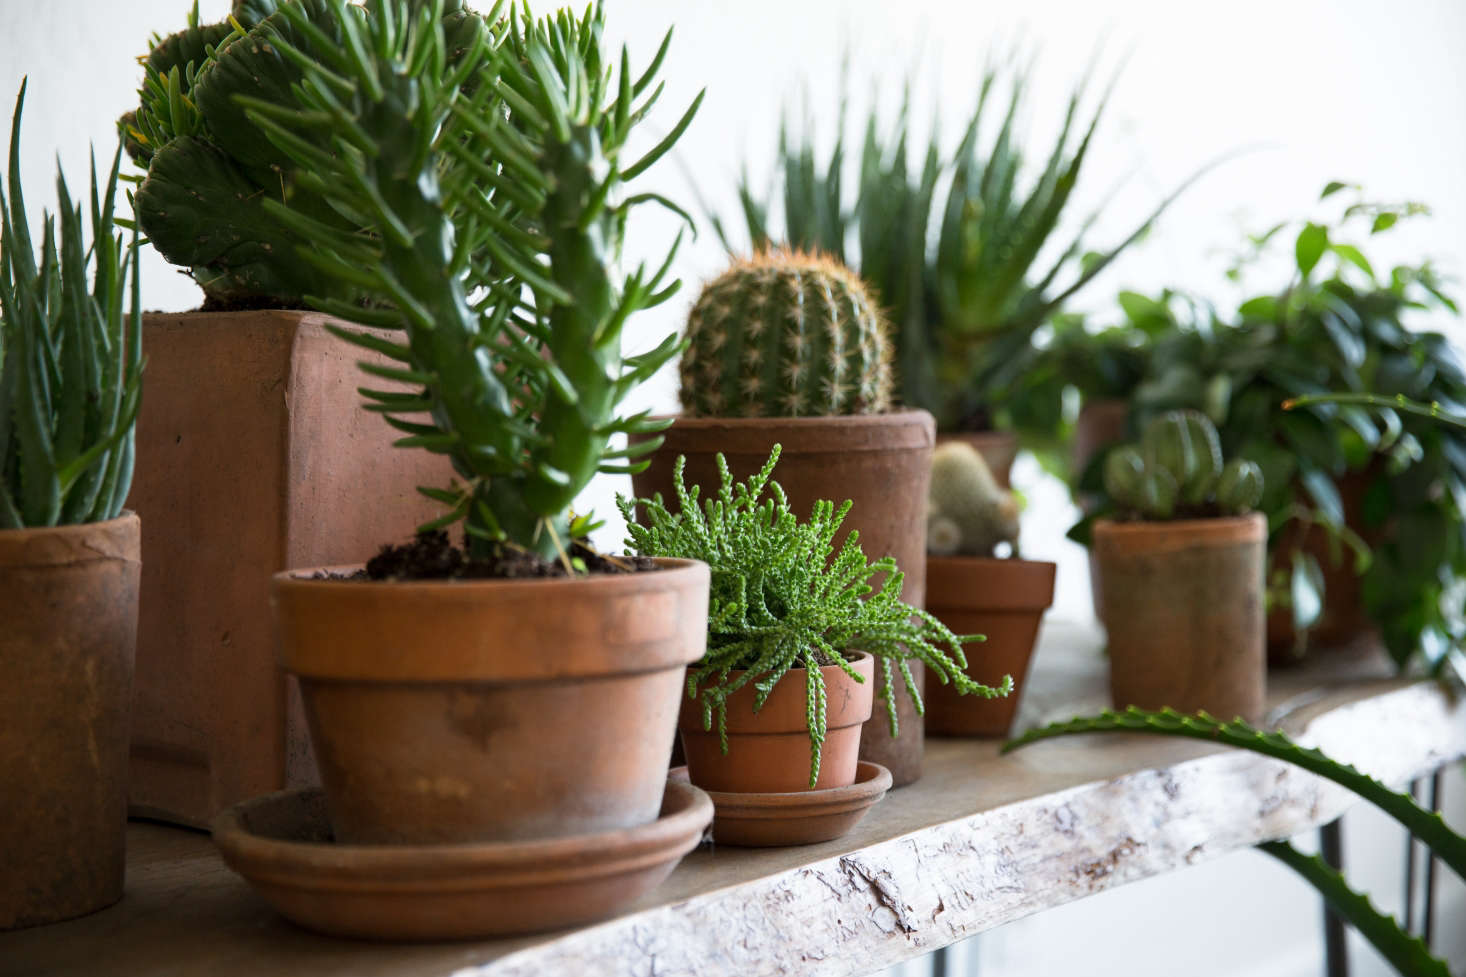 Photograph by Molly Decoudreaux via The Plant Library.